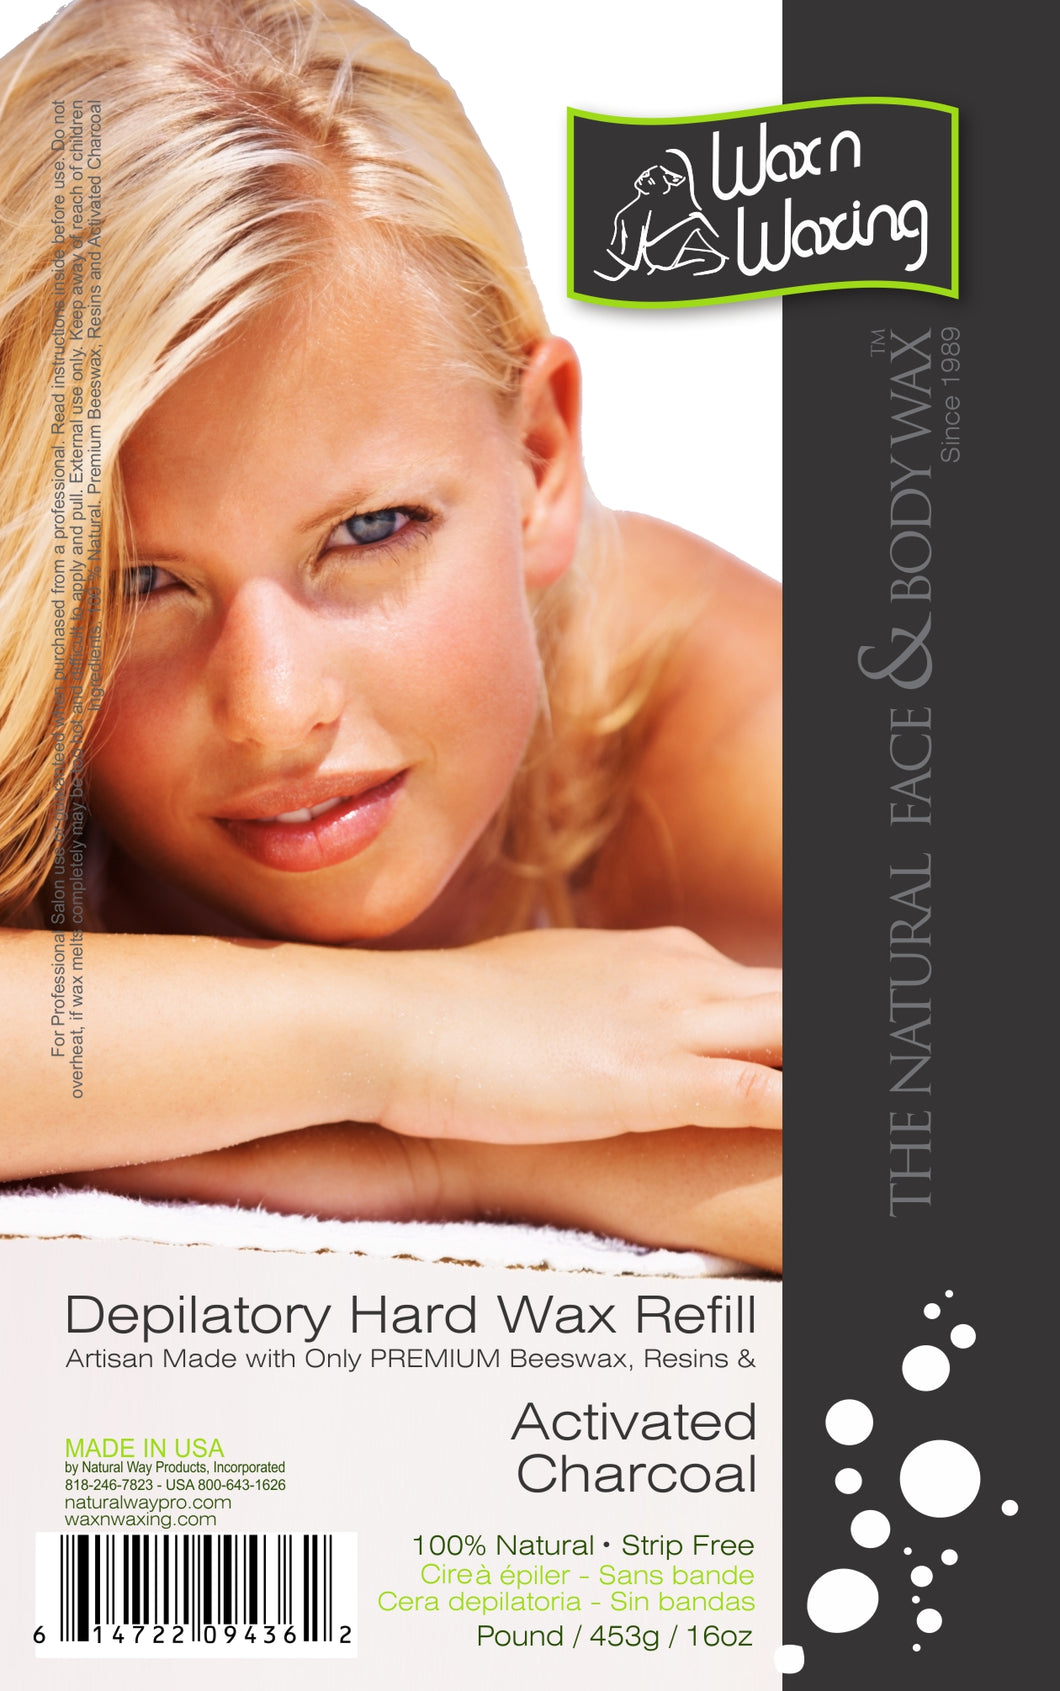 Wax n Waxing Depilatory Hard Wax - Refill by Pound